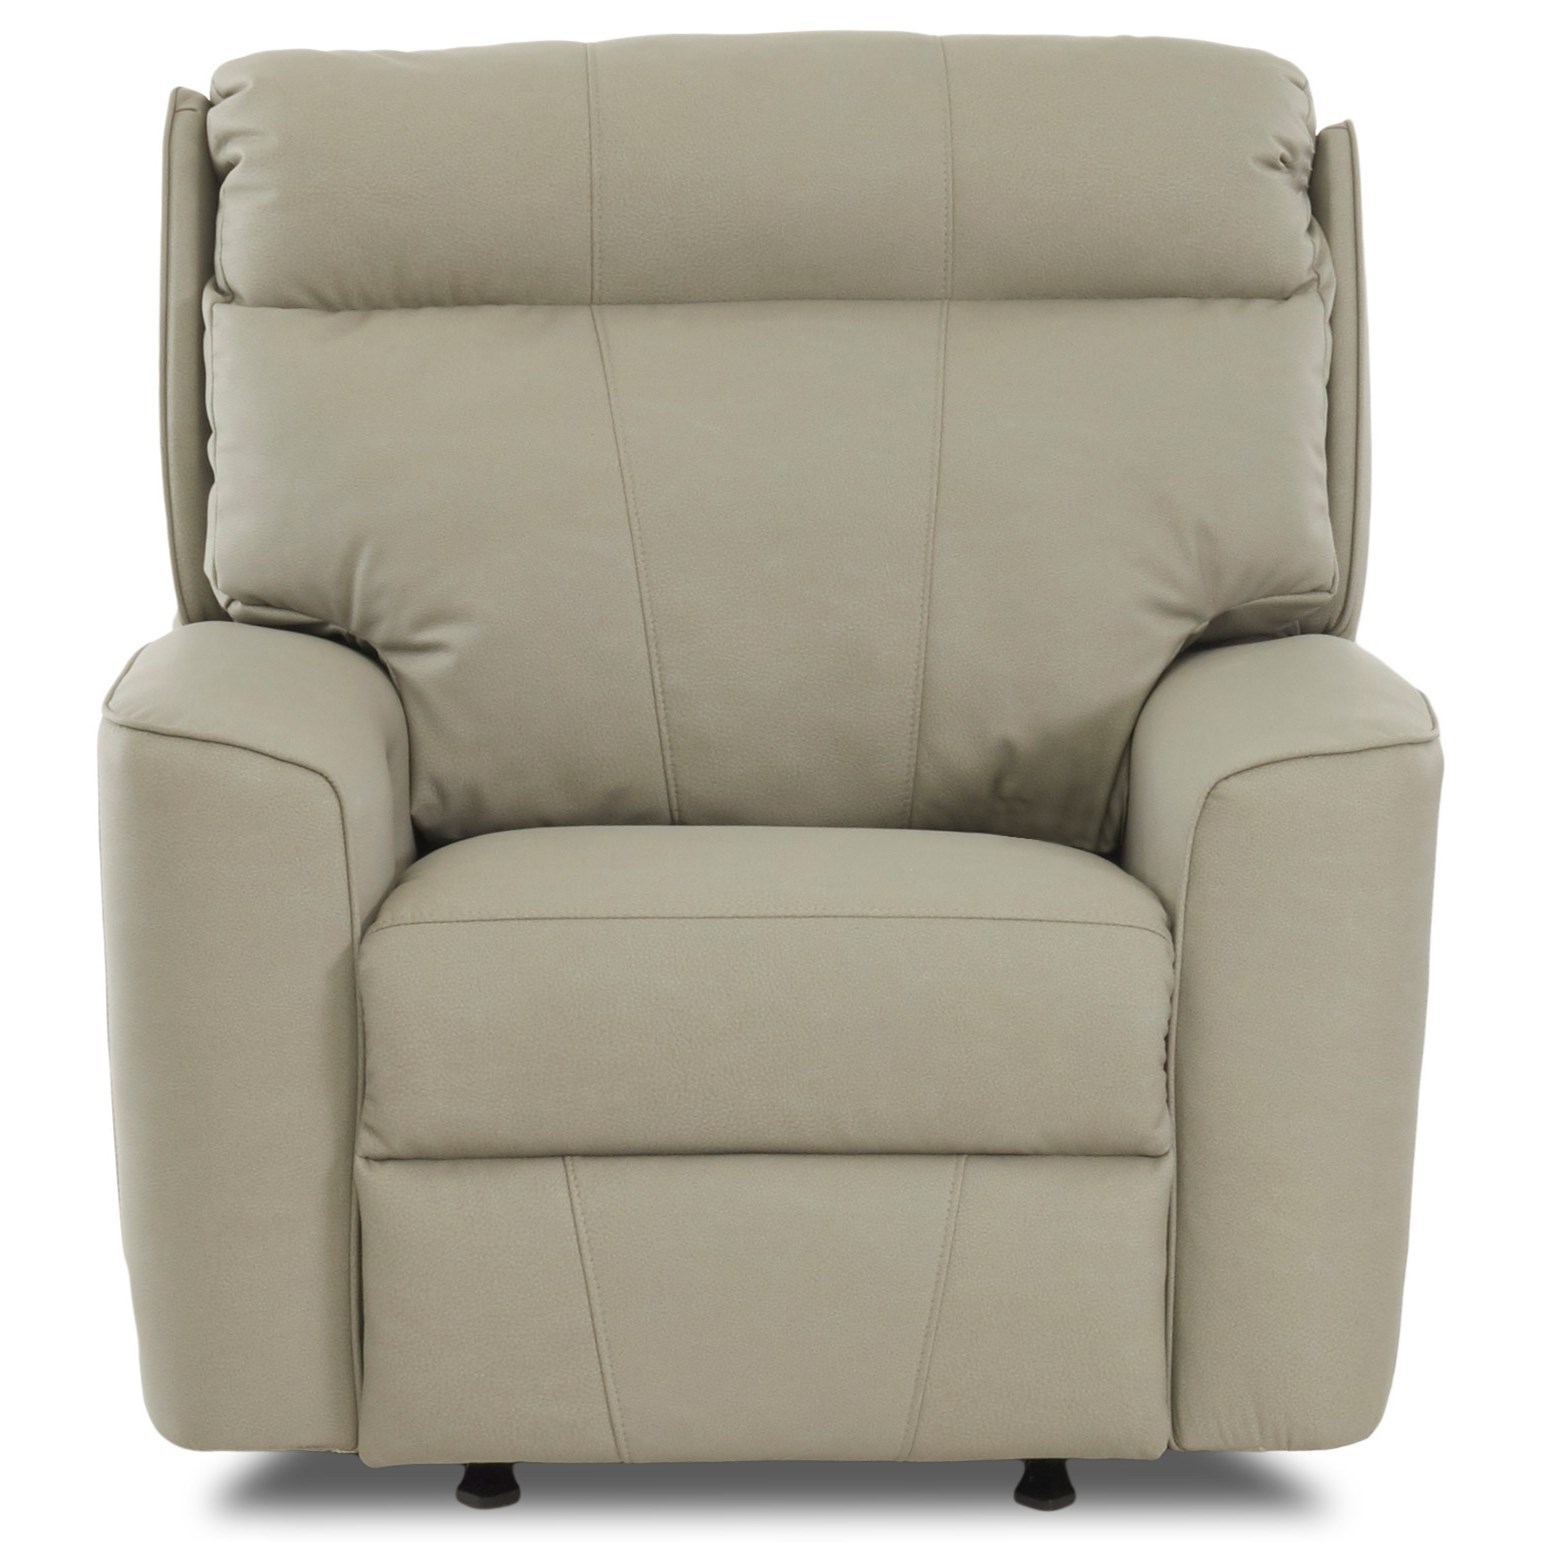 Casual Power Reclining Chair with USB Port and Bluetooth Capability